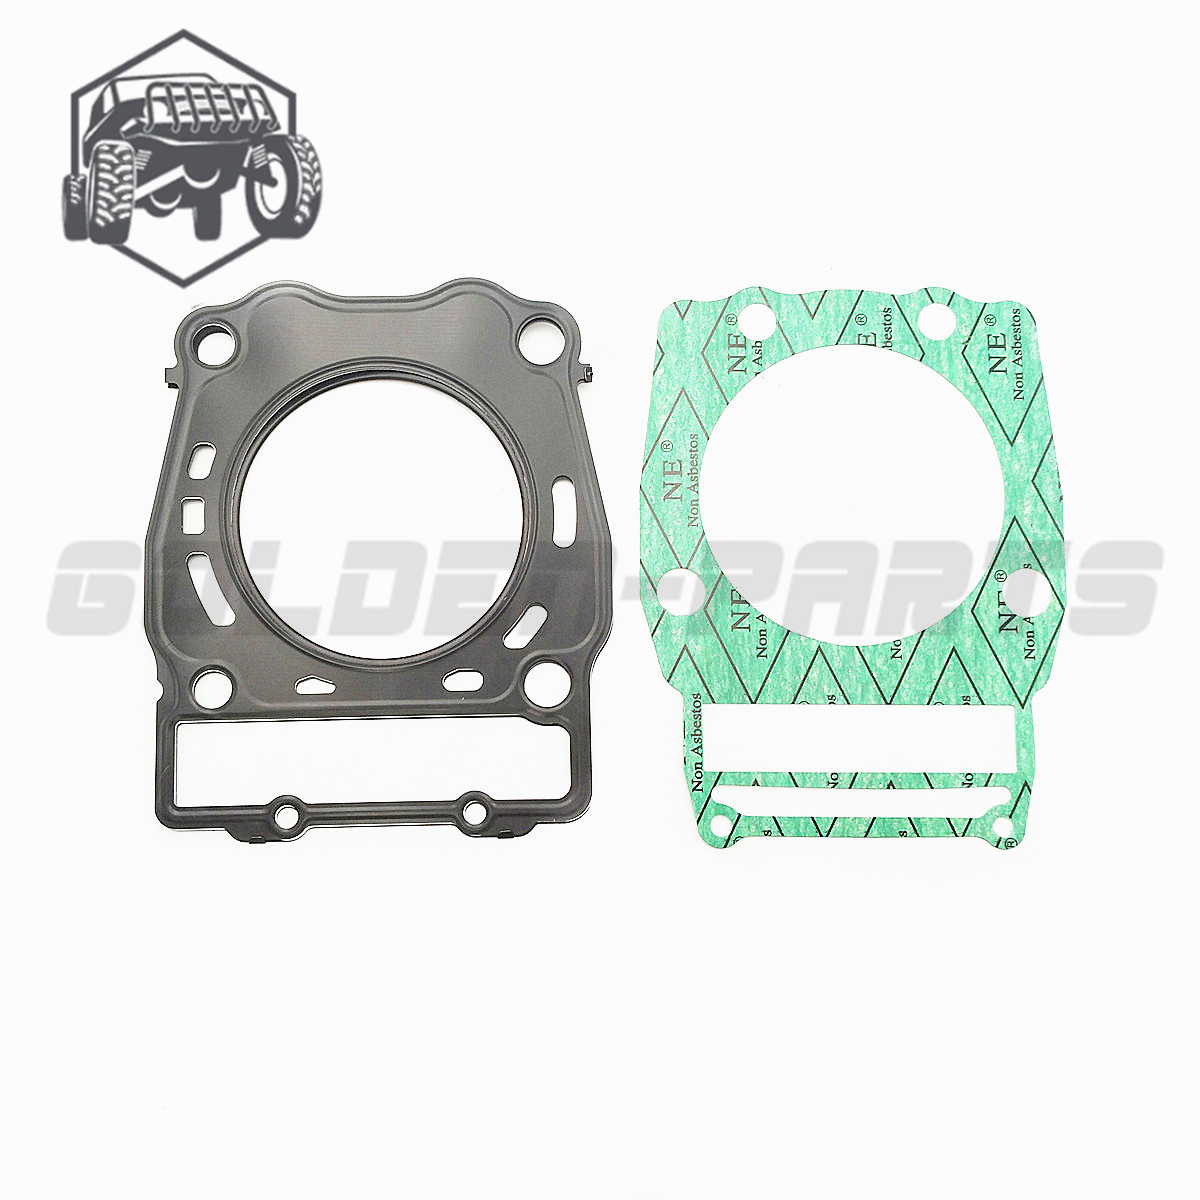 500CC ATV Cylinder Head And Block Gasket For 500 Xinyang 500CC Kazuma ATV UTV Engine Parts